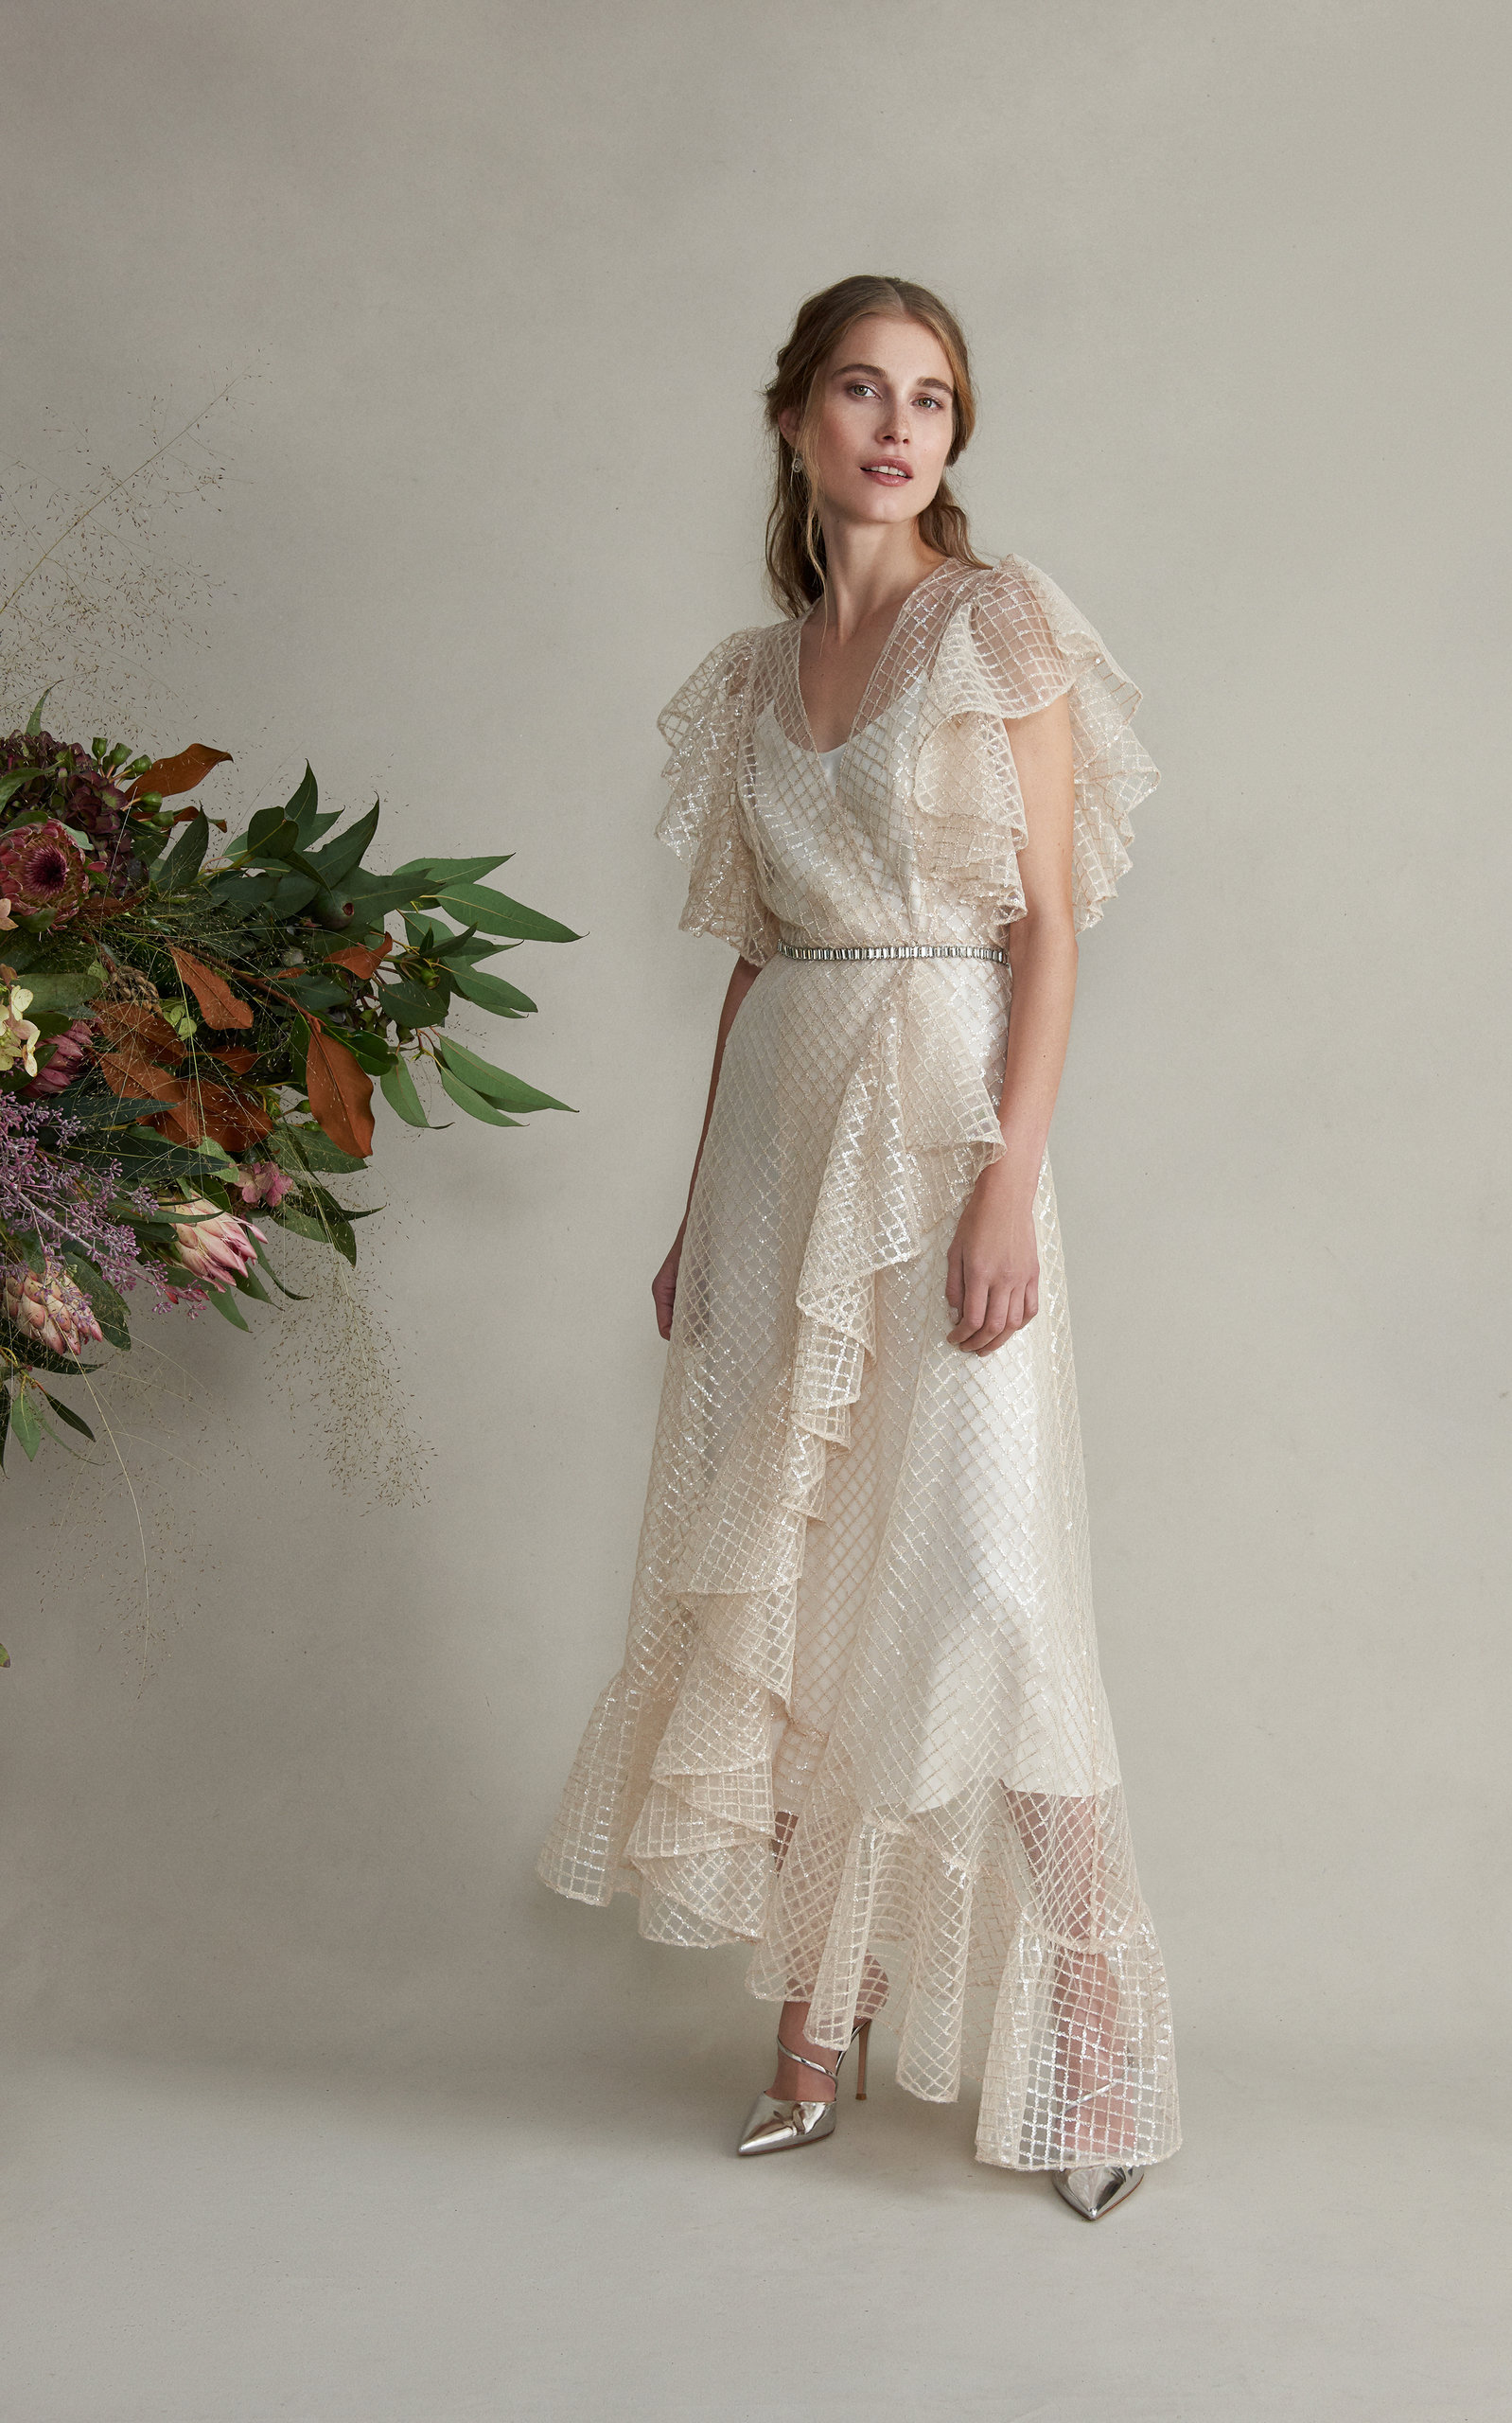 MARKARIAN Lancelot Gridded Lace Dress With Ruffle Sleeve And Hem in White